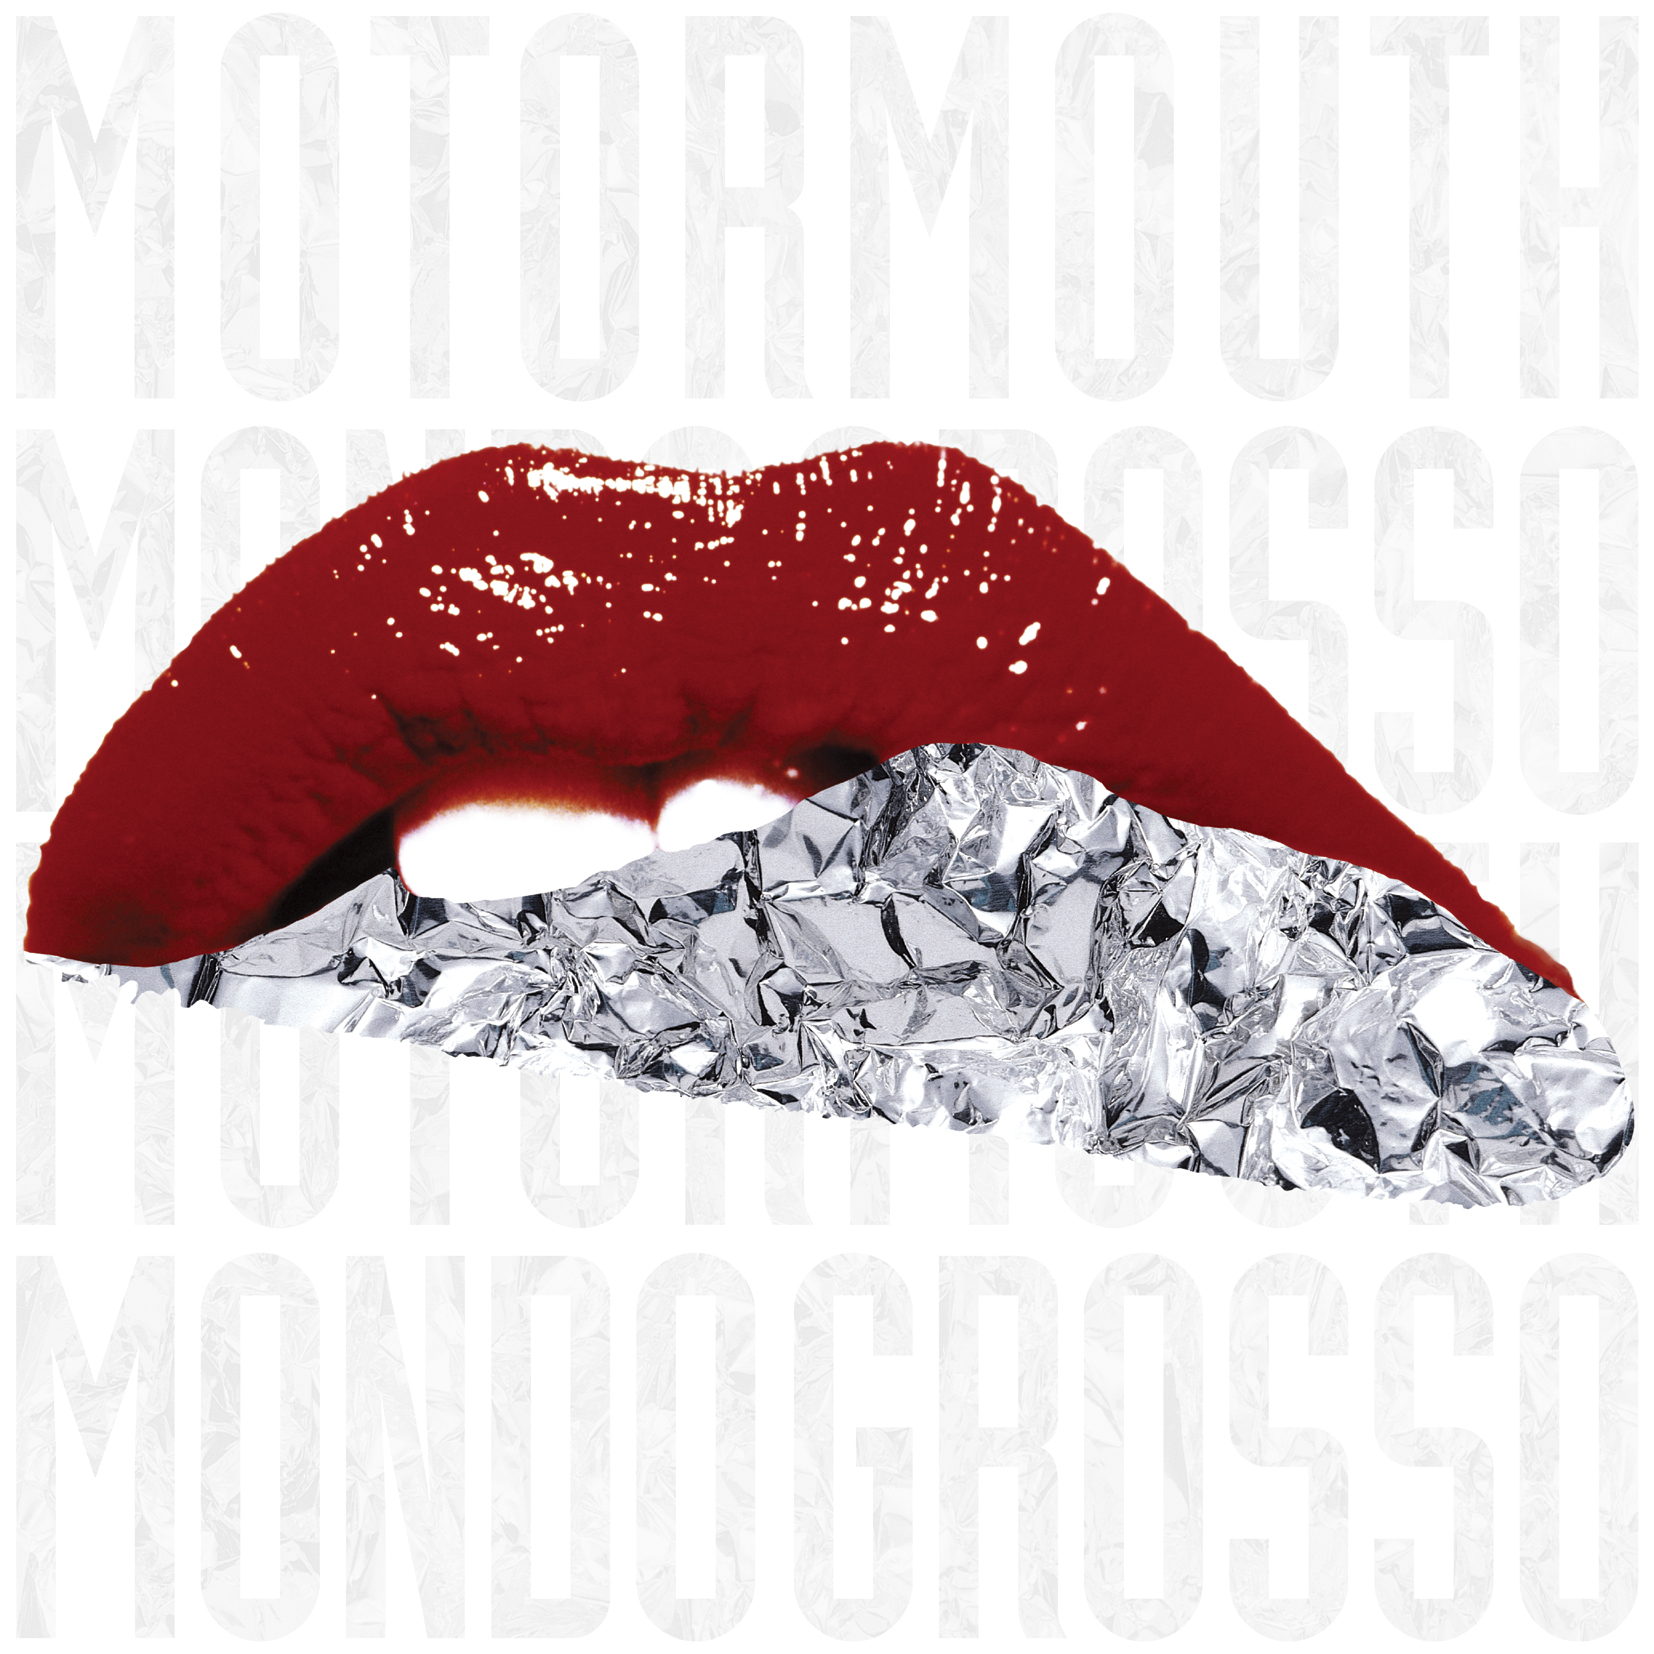 MONDO GROSSO「MOTOR MOUTH」